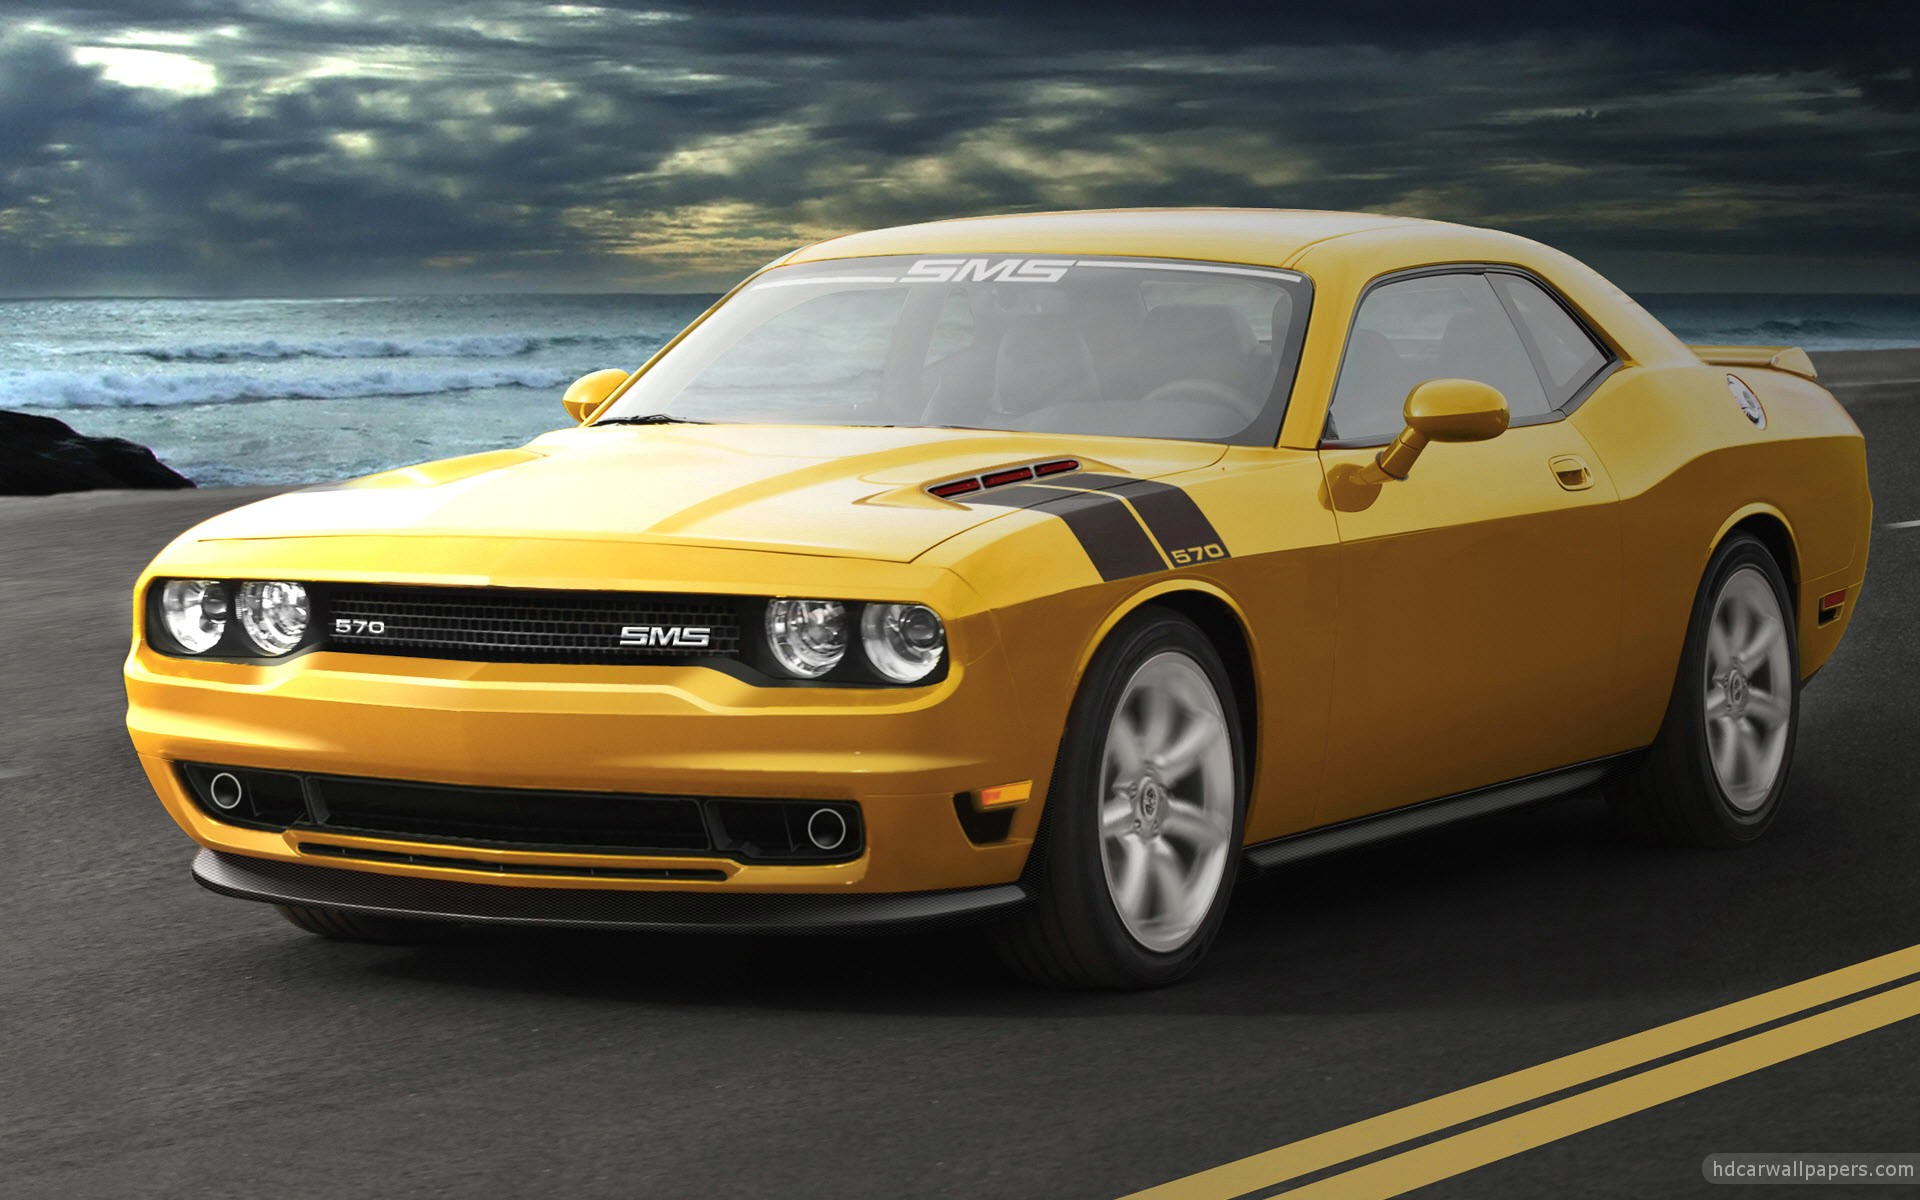 SMS Dodge Challenger Wallpaper HD Car Wallpapers 1920x1200